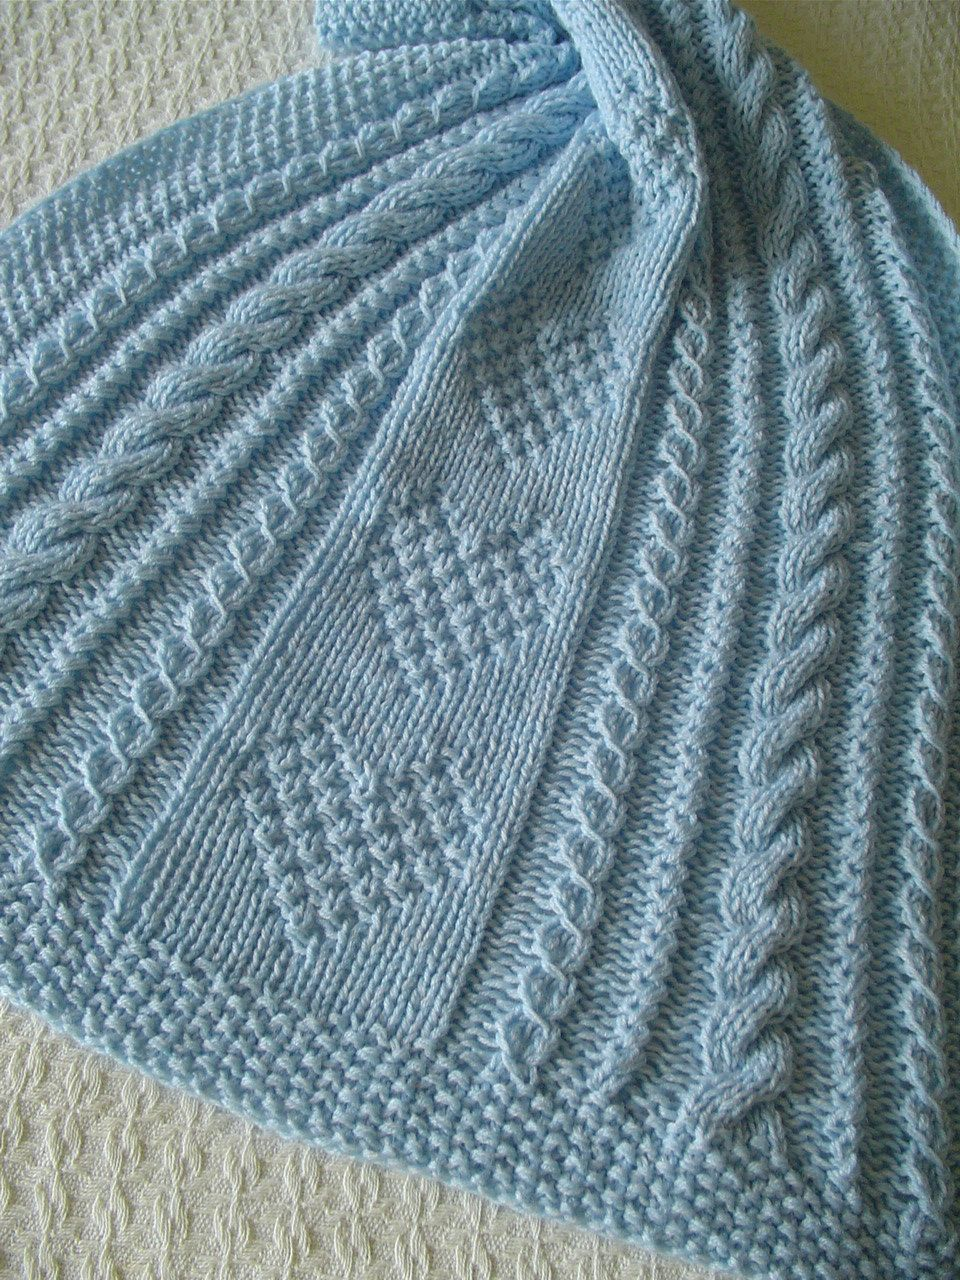 Sweet free baby blanket love the stitches knitondesigns baby blanket blue baby blanket hand knit baby afghan handmade baby blanket hearts cables eyelet pattern baby blanket collectible usd by ednascloset bankloansurffo Gallery